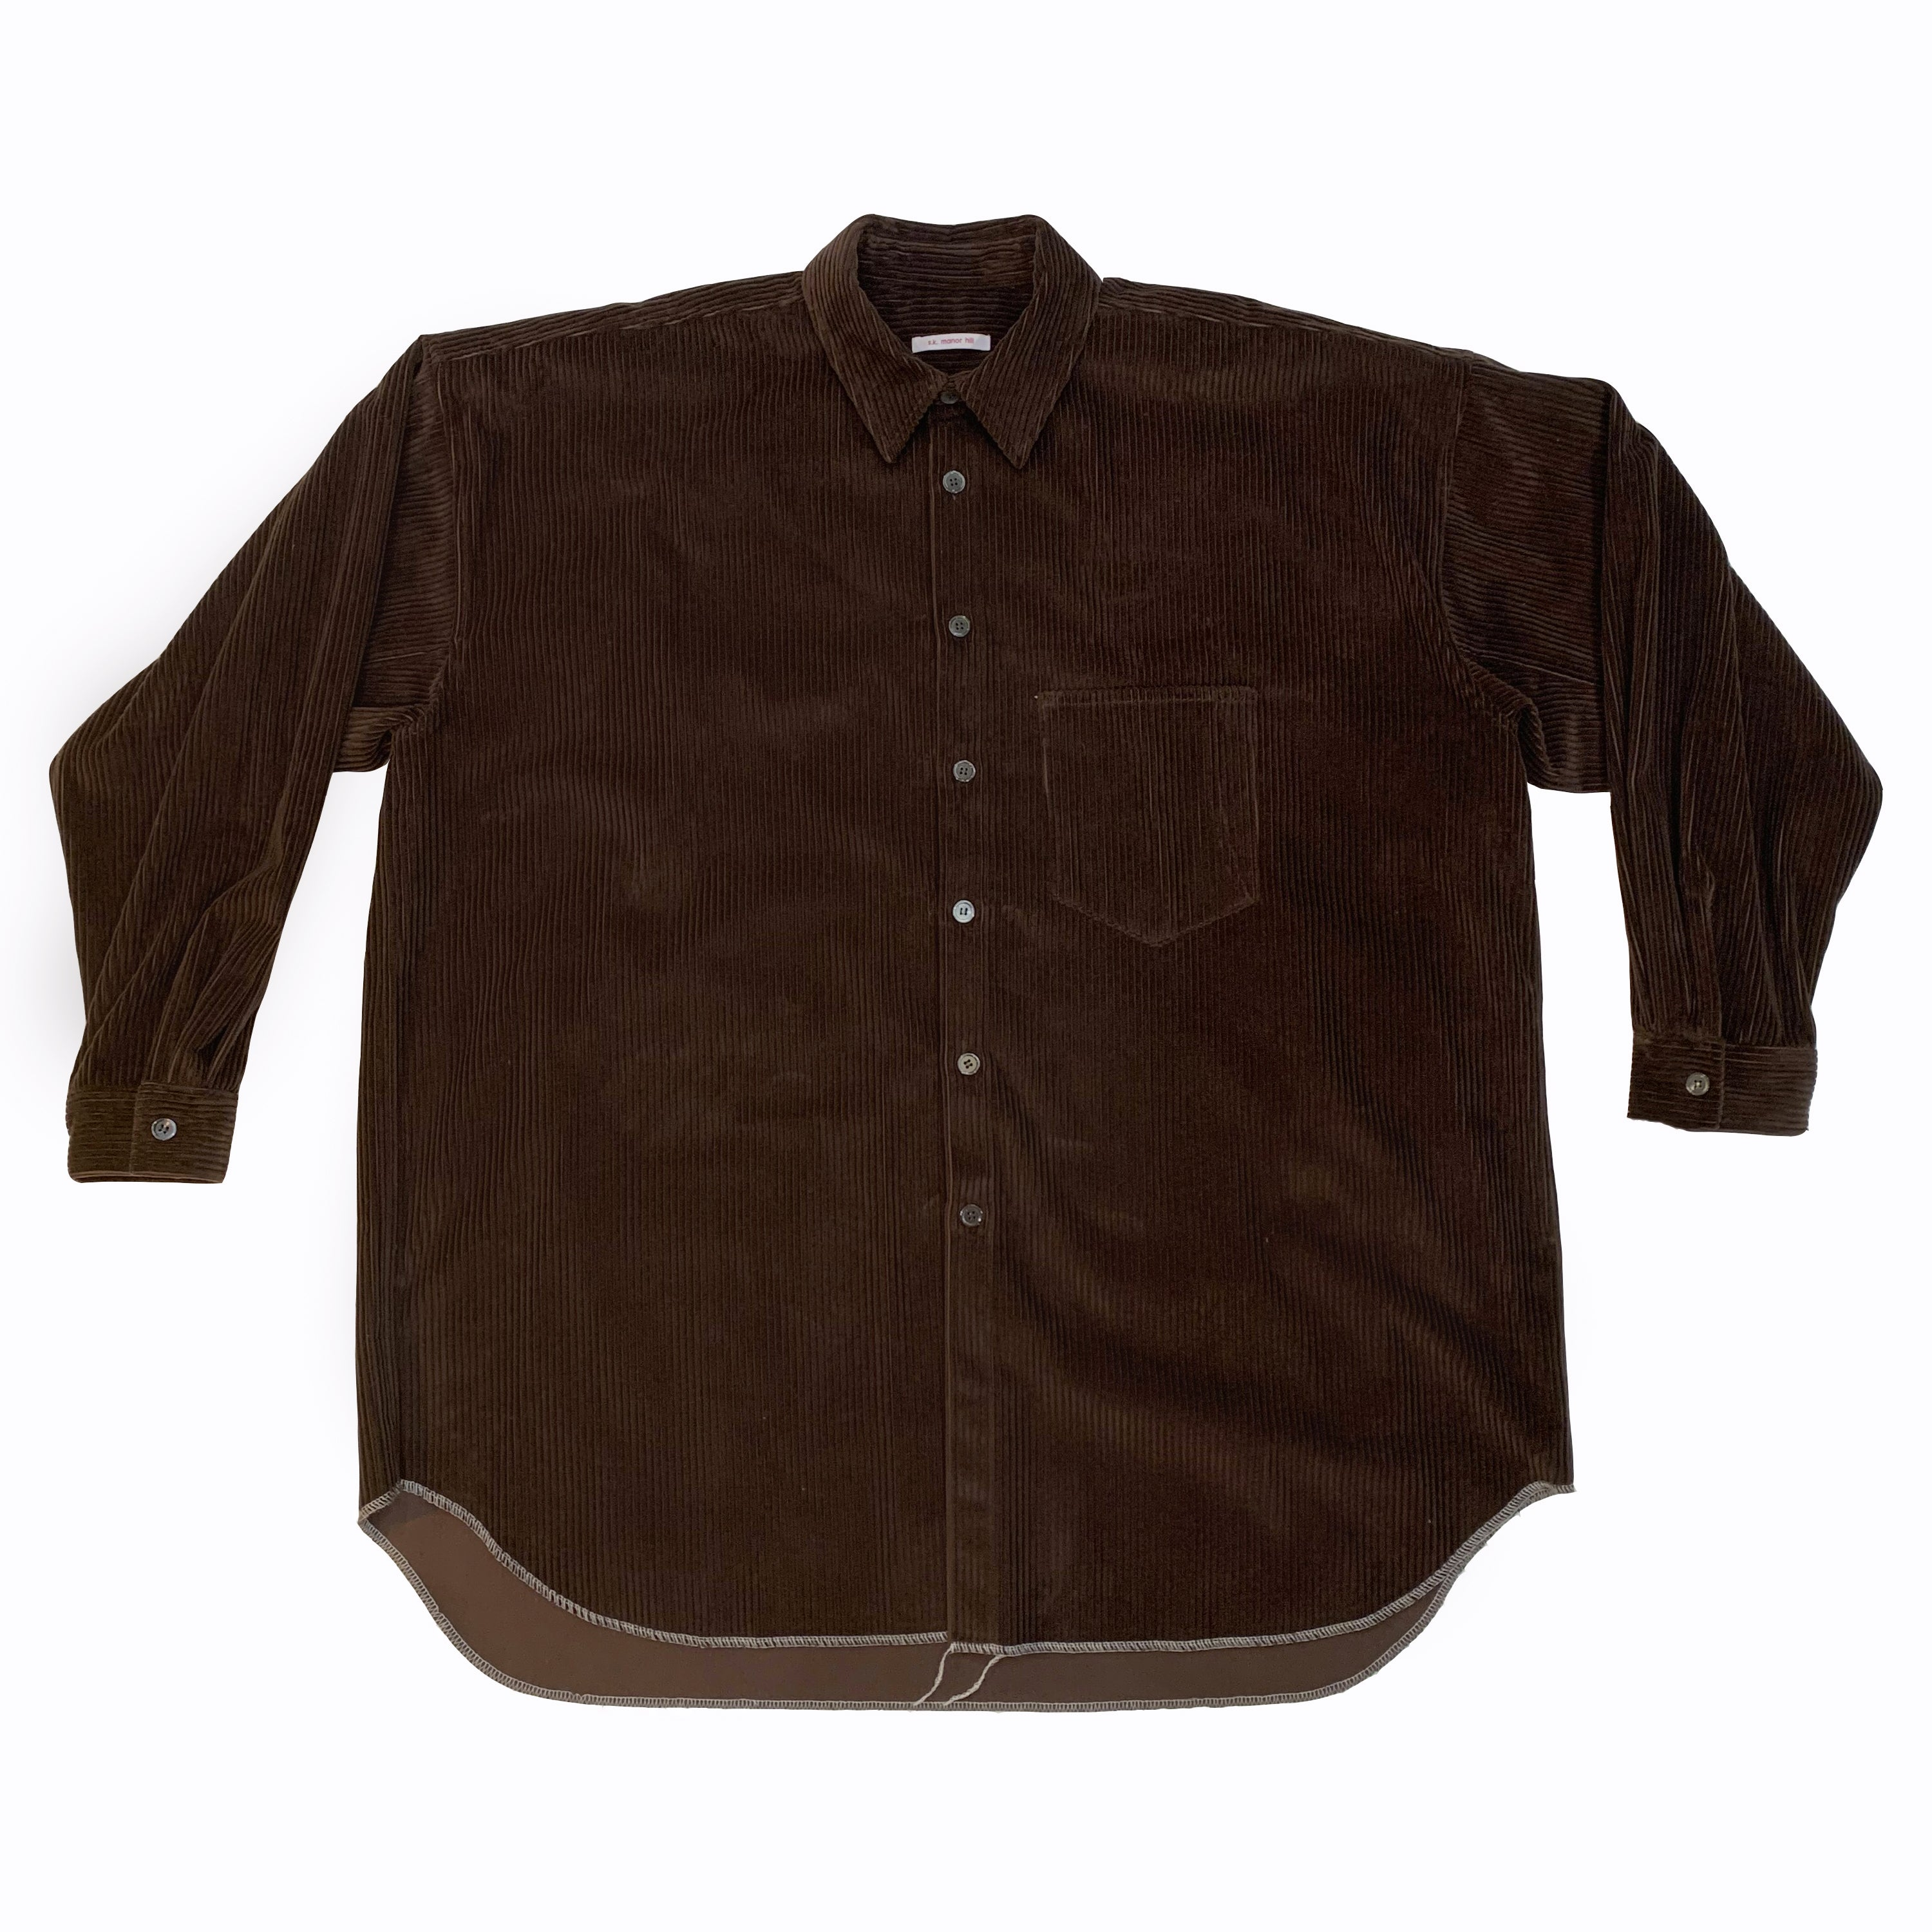 Ox Shirt - Brown Corduroy